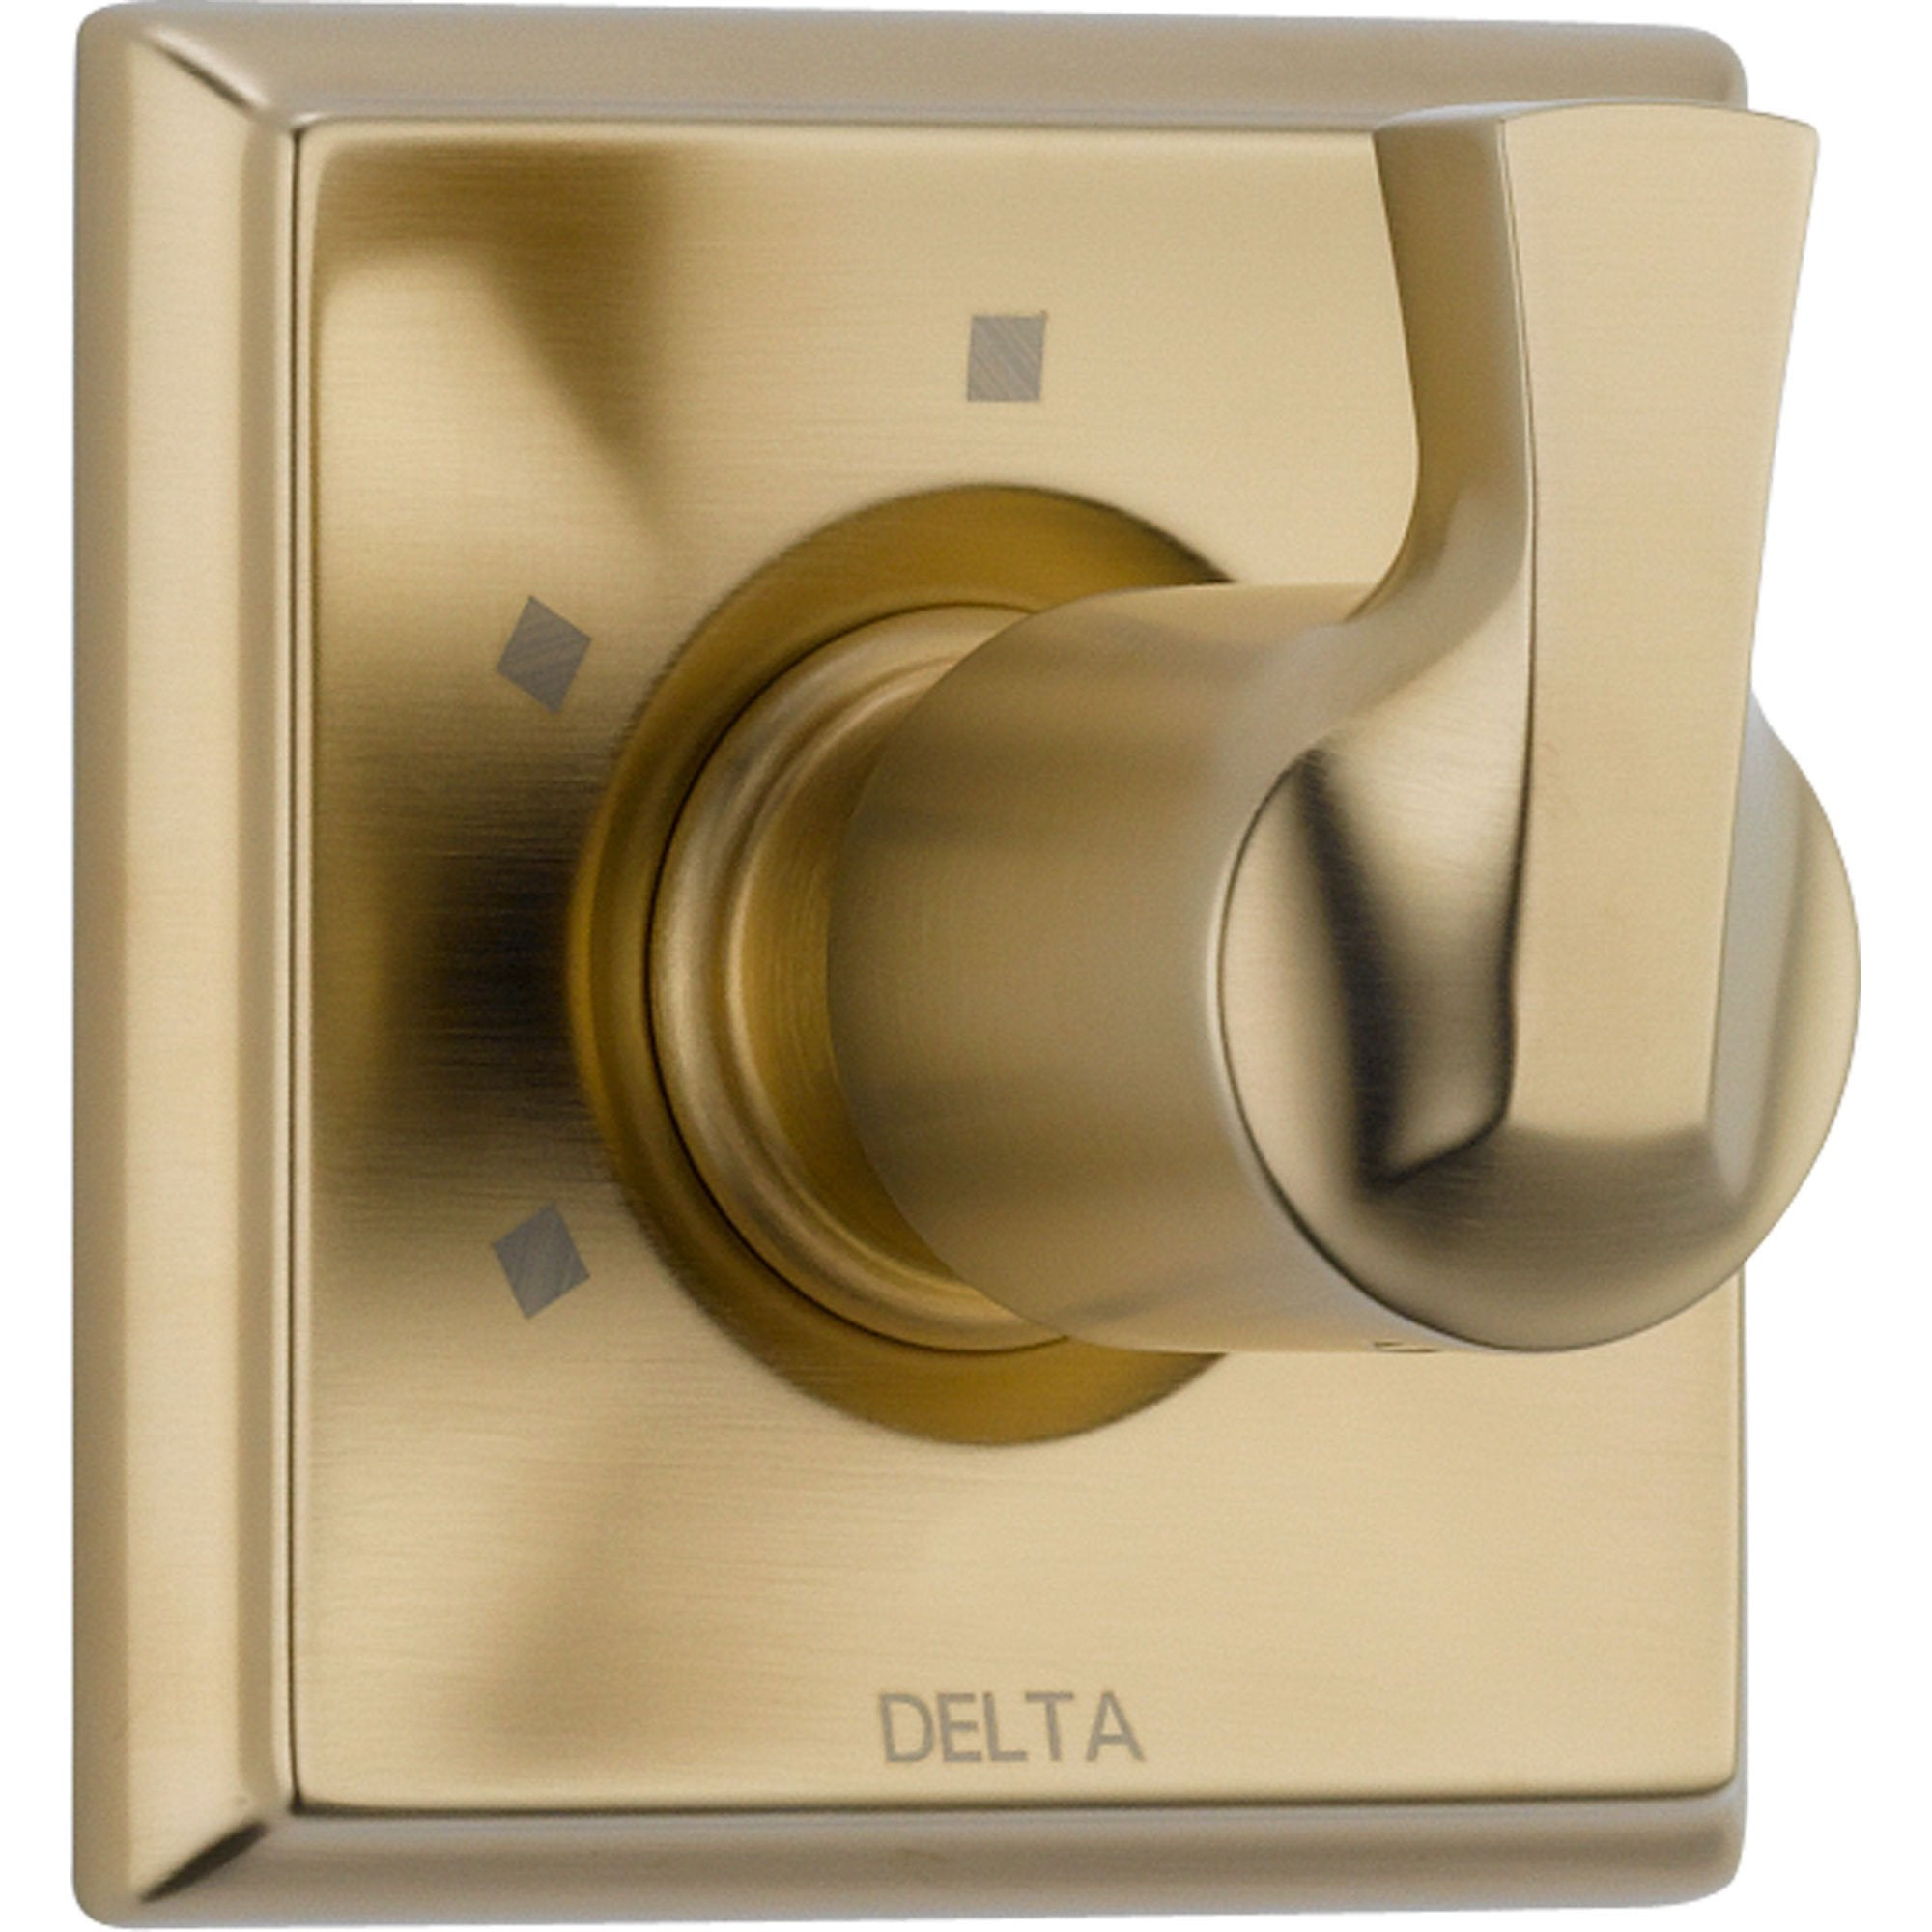 Delta 3-Setting Champagne Bronze Shower Diverter Single Handle Trim Kit 555991